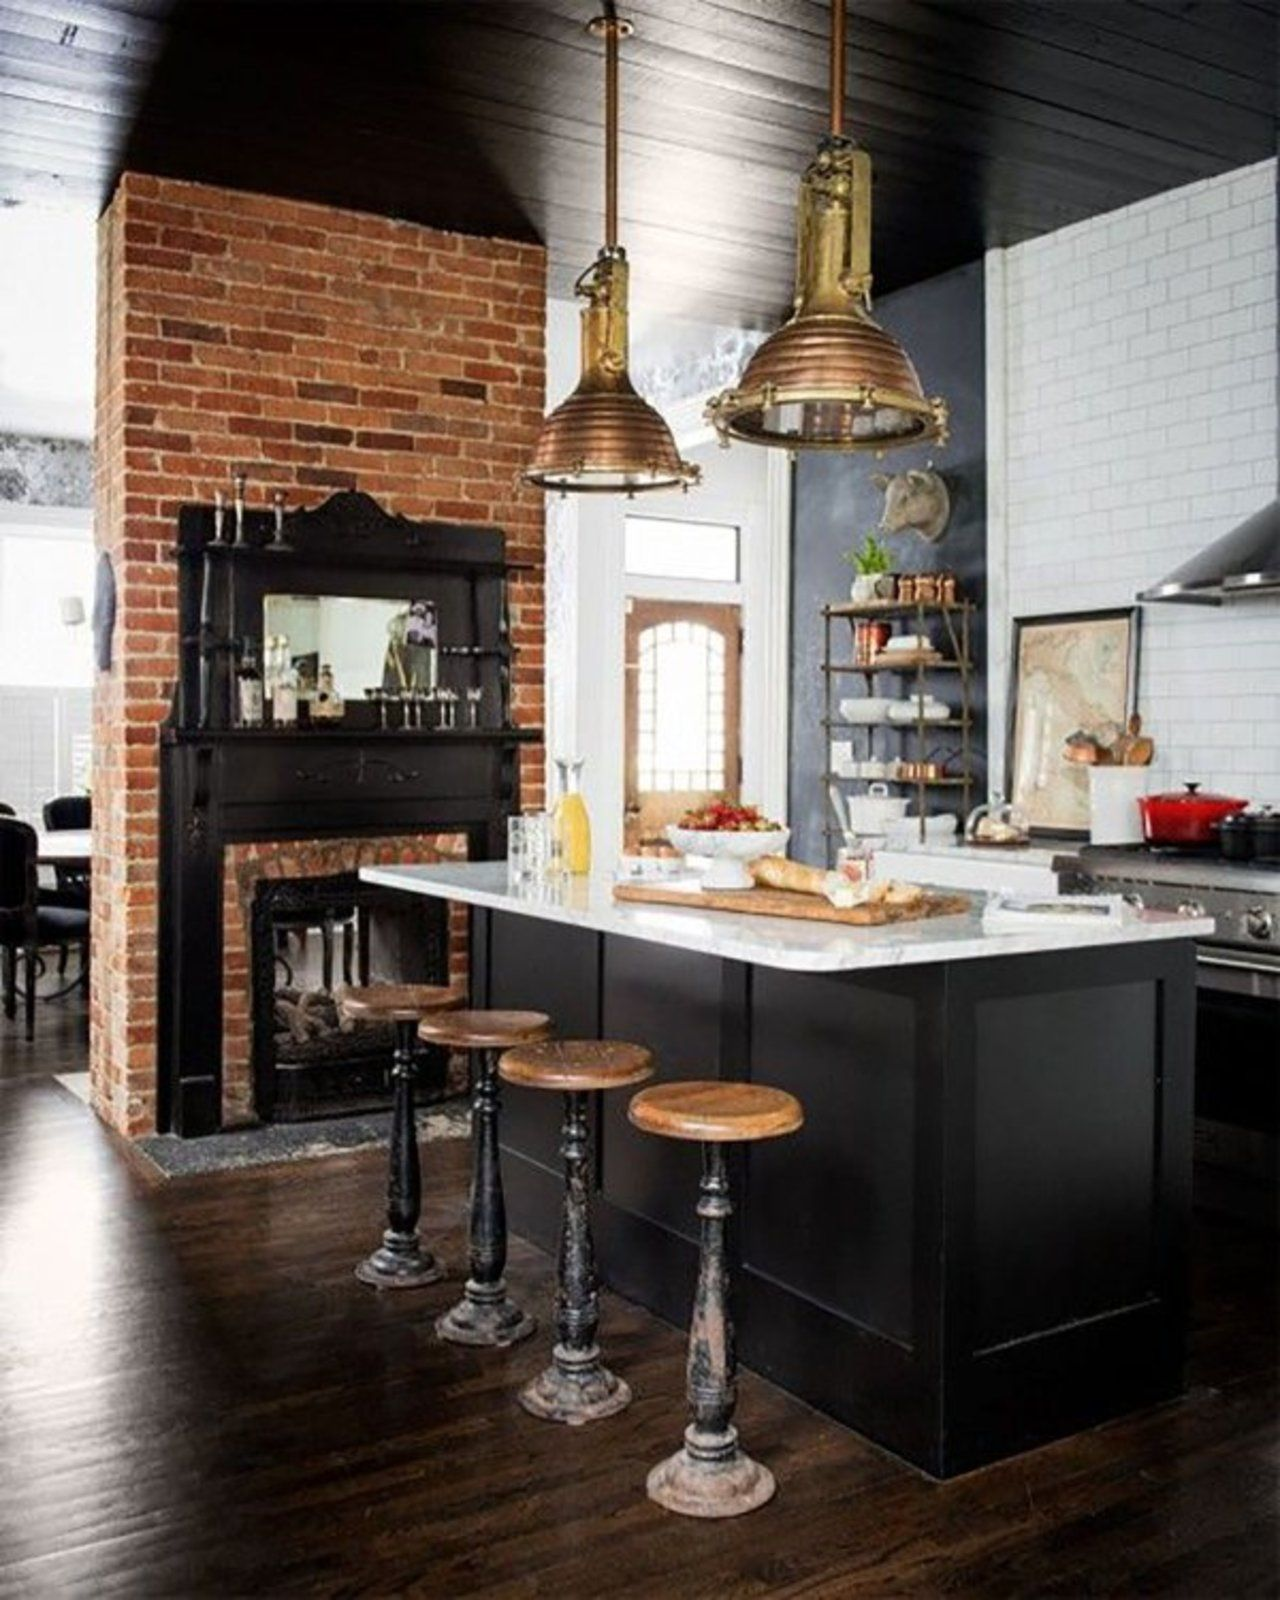 Captivating Hereu0027s Why You Should Paint Your Ceiling Black